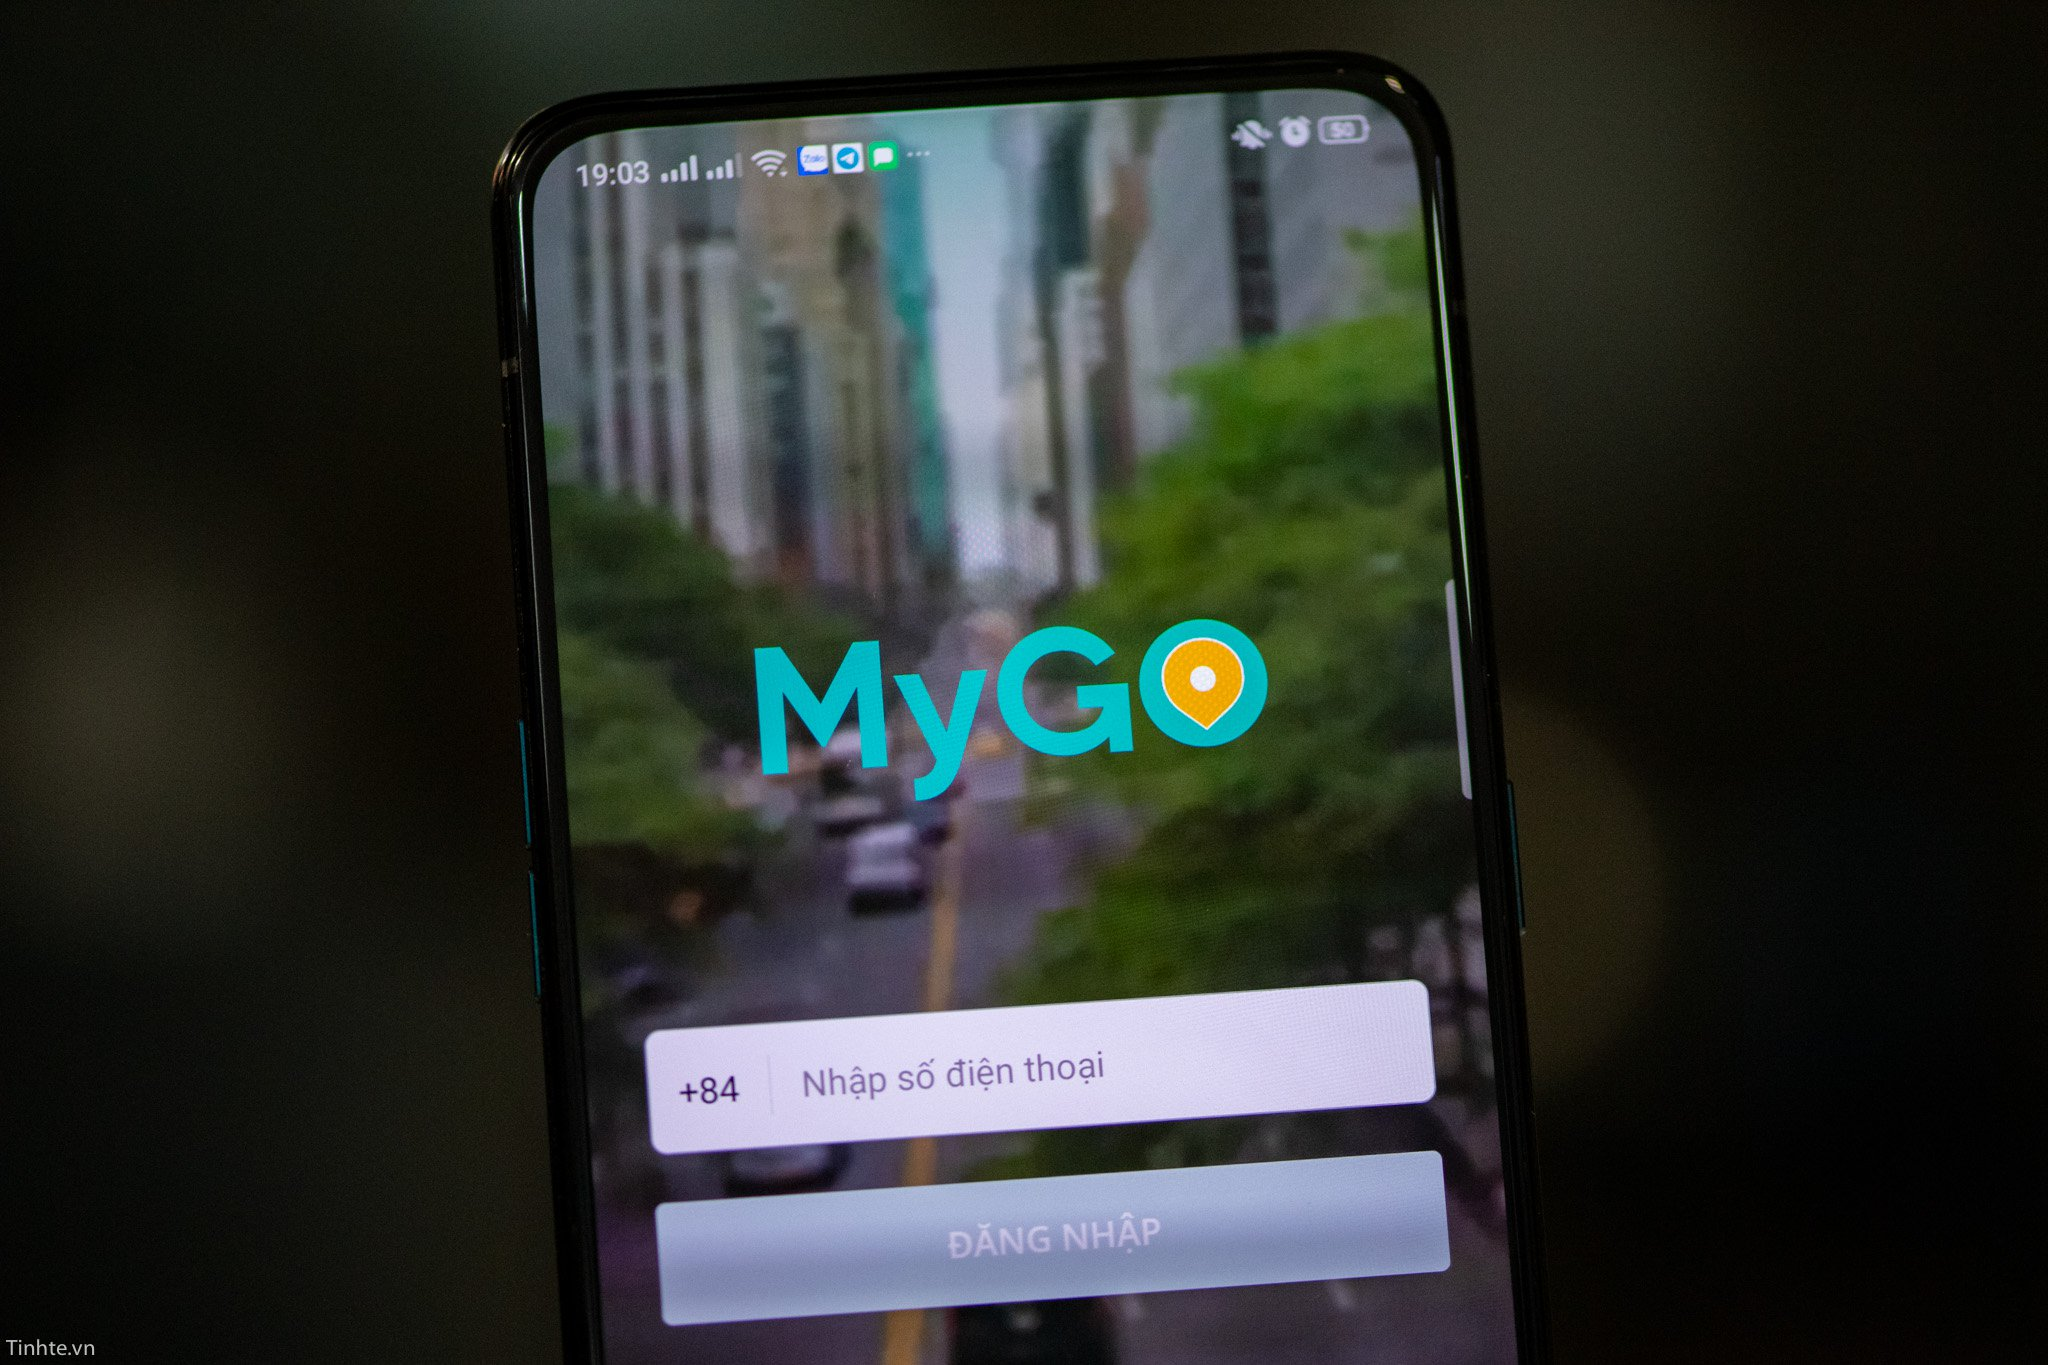 Viettel launches MyGo application: booking trips for motorbikes, cars, delivery, trucks, ...